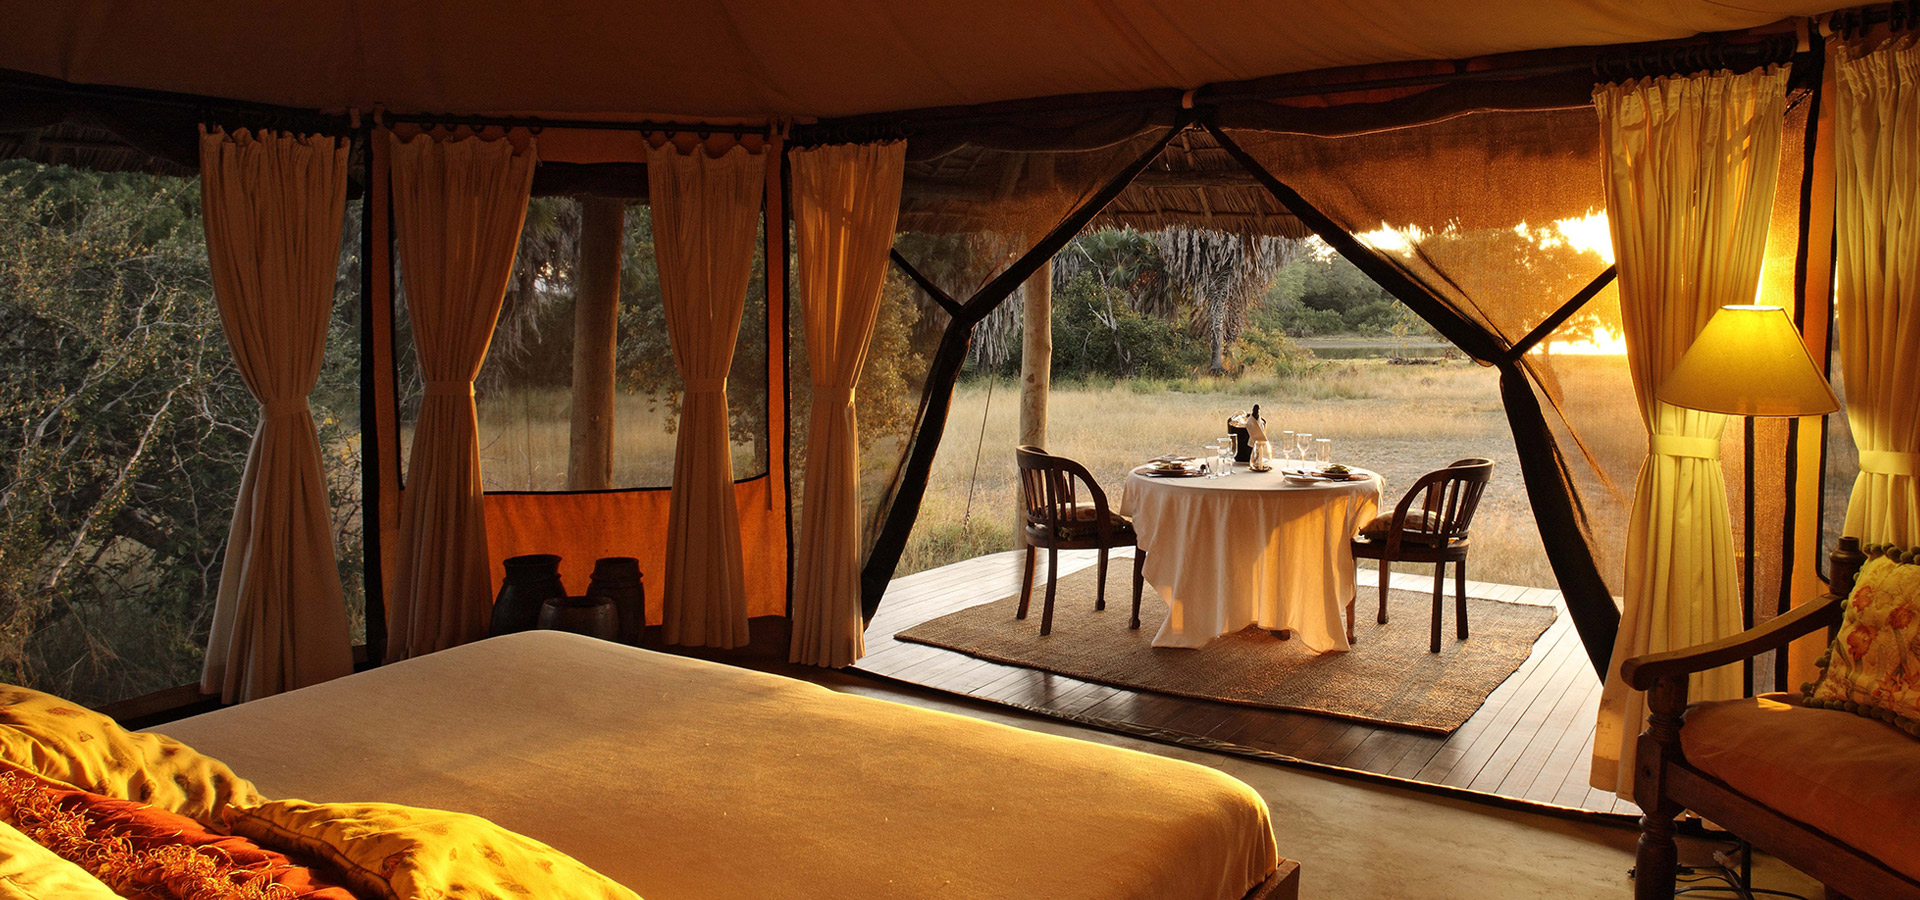 Accommodation In African Safari